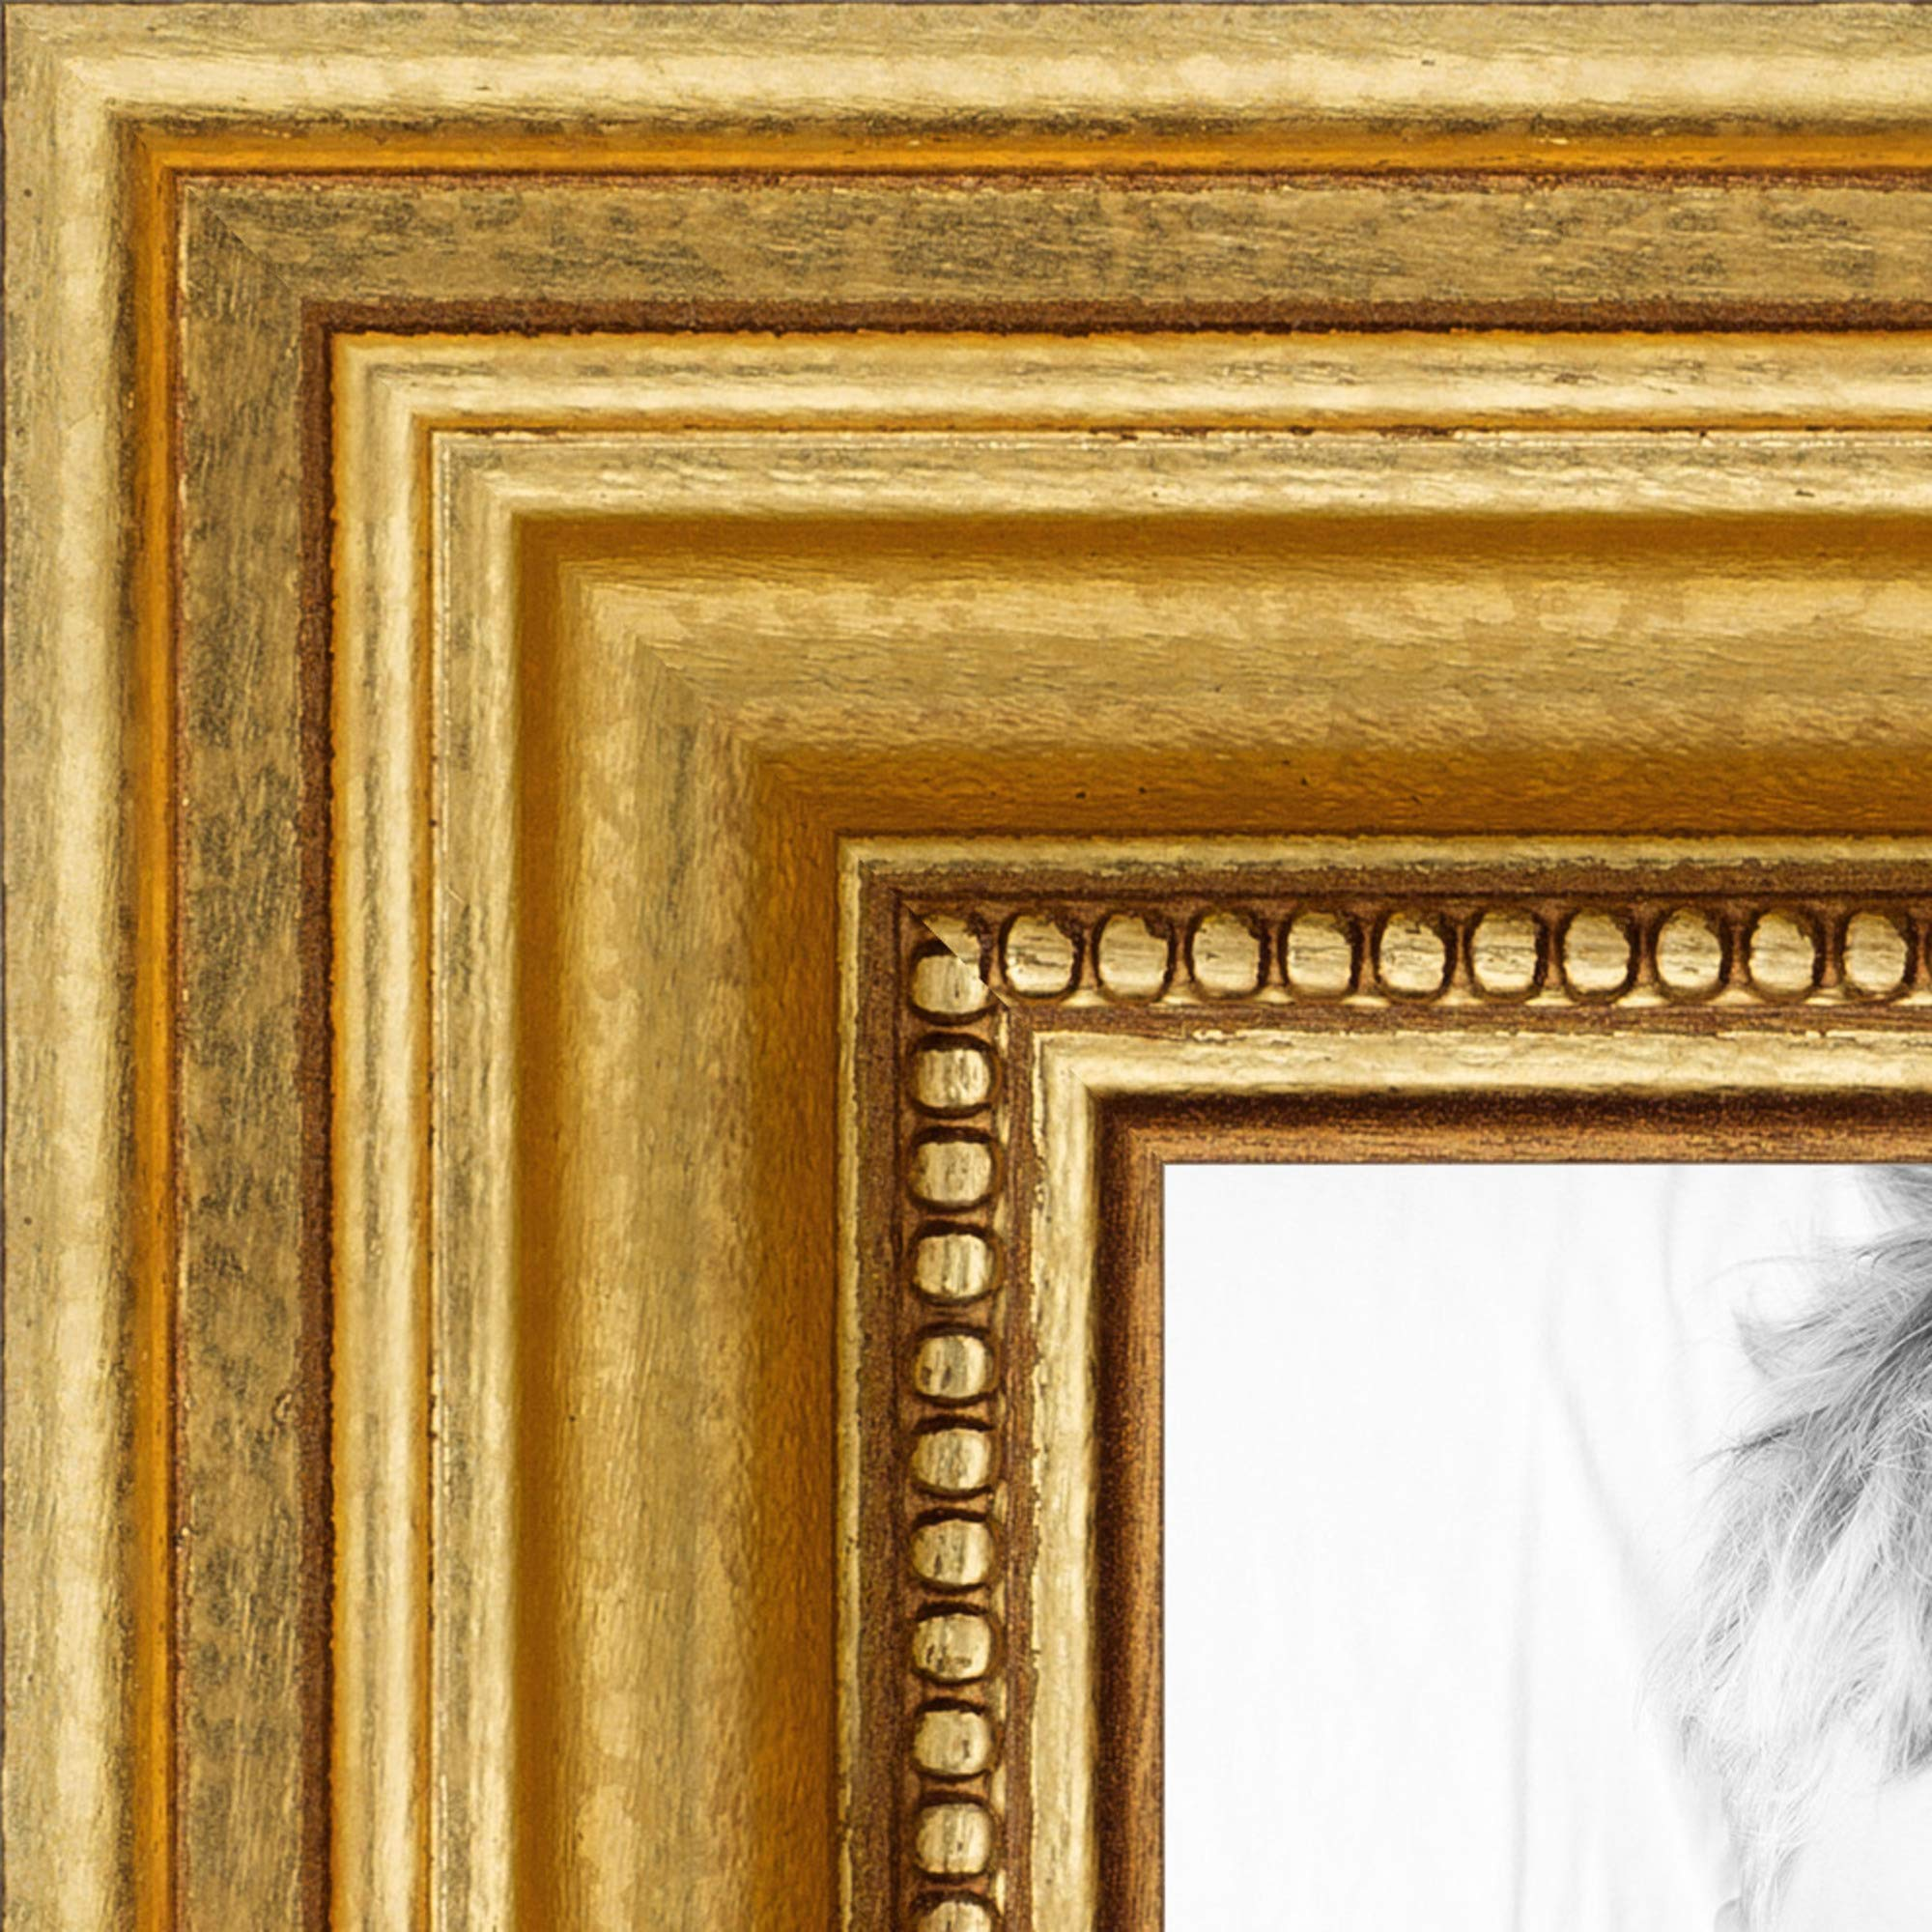 ArtToFrames 8x22 inch Gold Foil on Pine Wood Picture Frame, 2WOM0066-81375-YGLD-8x22